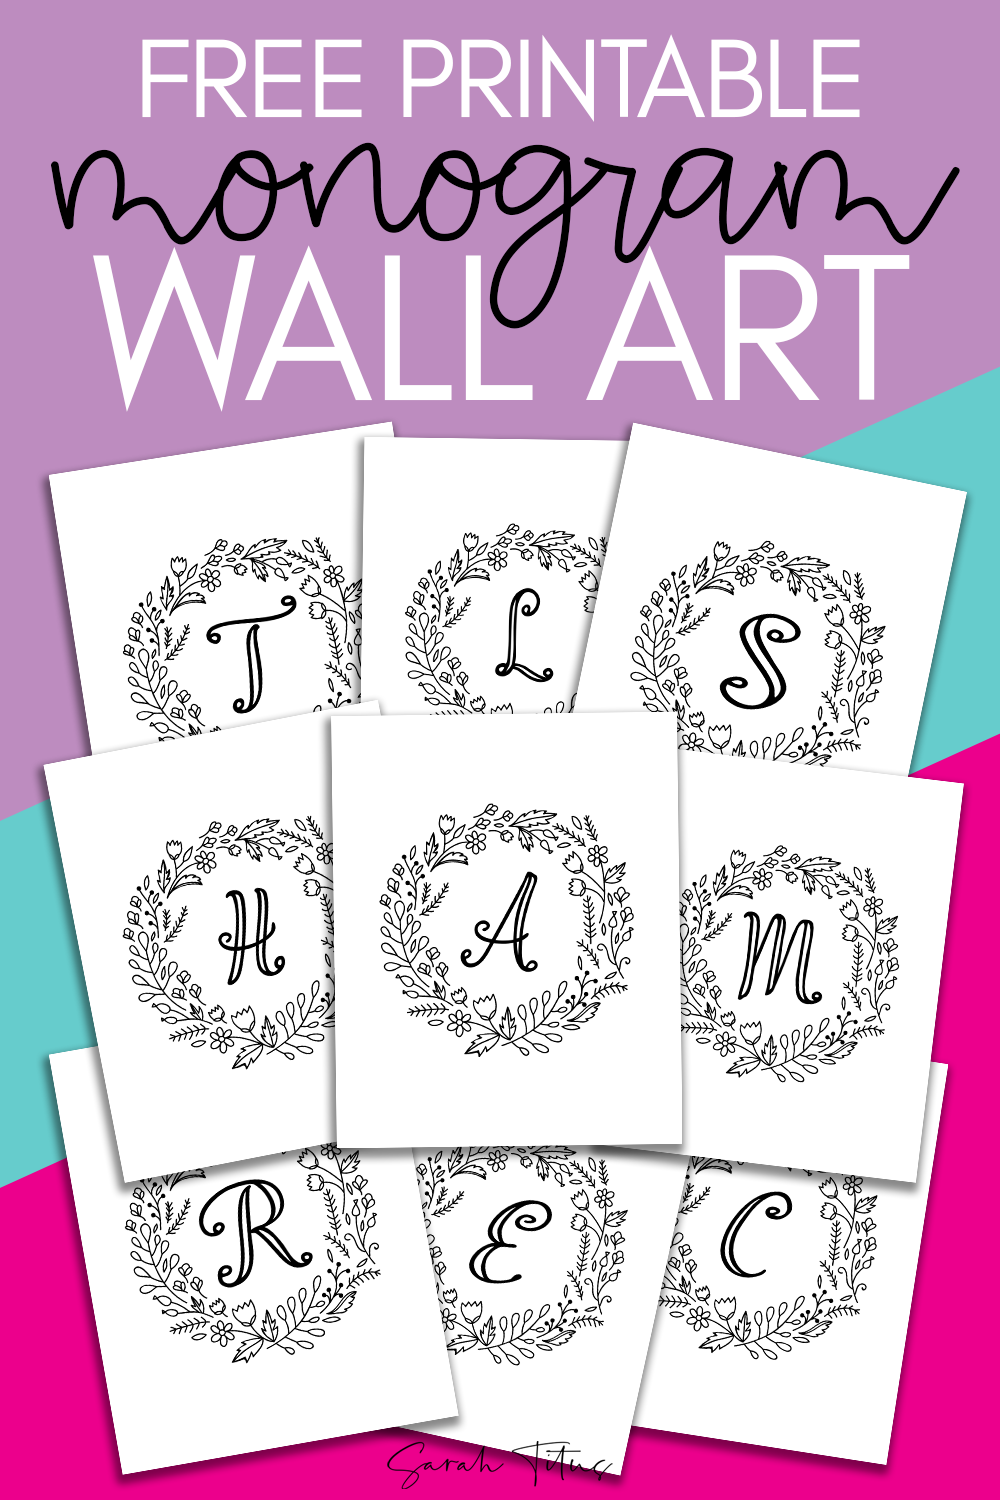 graphic relating to Free Printable Monogram referred to as No cost Printable Monogram Wall Artwork - Colorable! - Sarah Titus